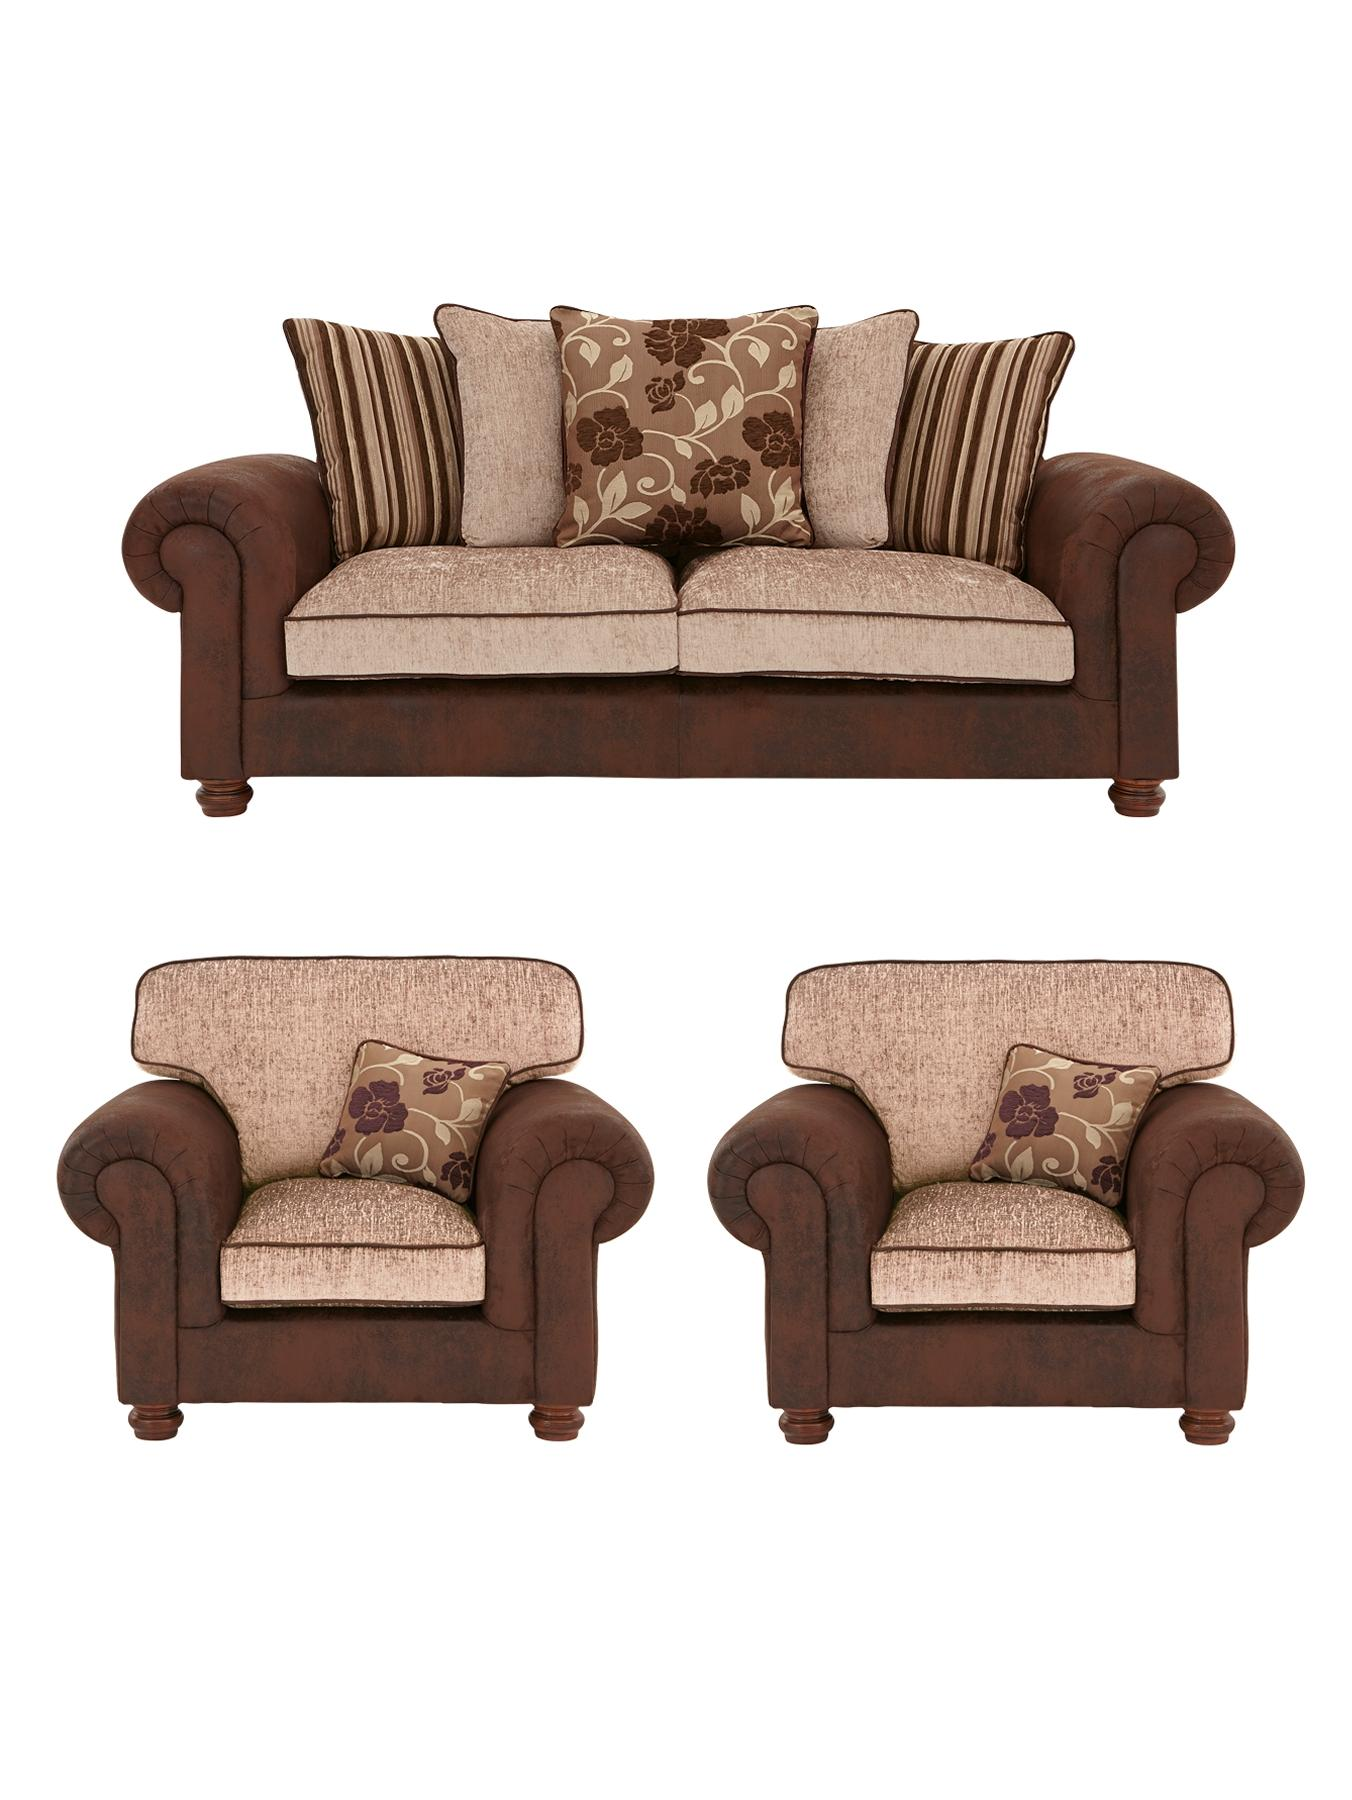 Astley 3-Seater Sofa + 2 Armchairs (Buy and SAVE!), Black,Chocolate at Littlewoods Home Shopping